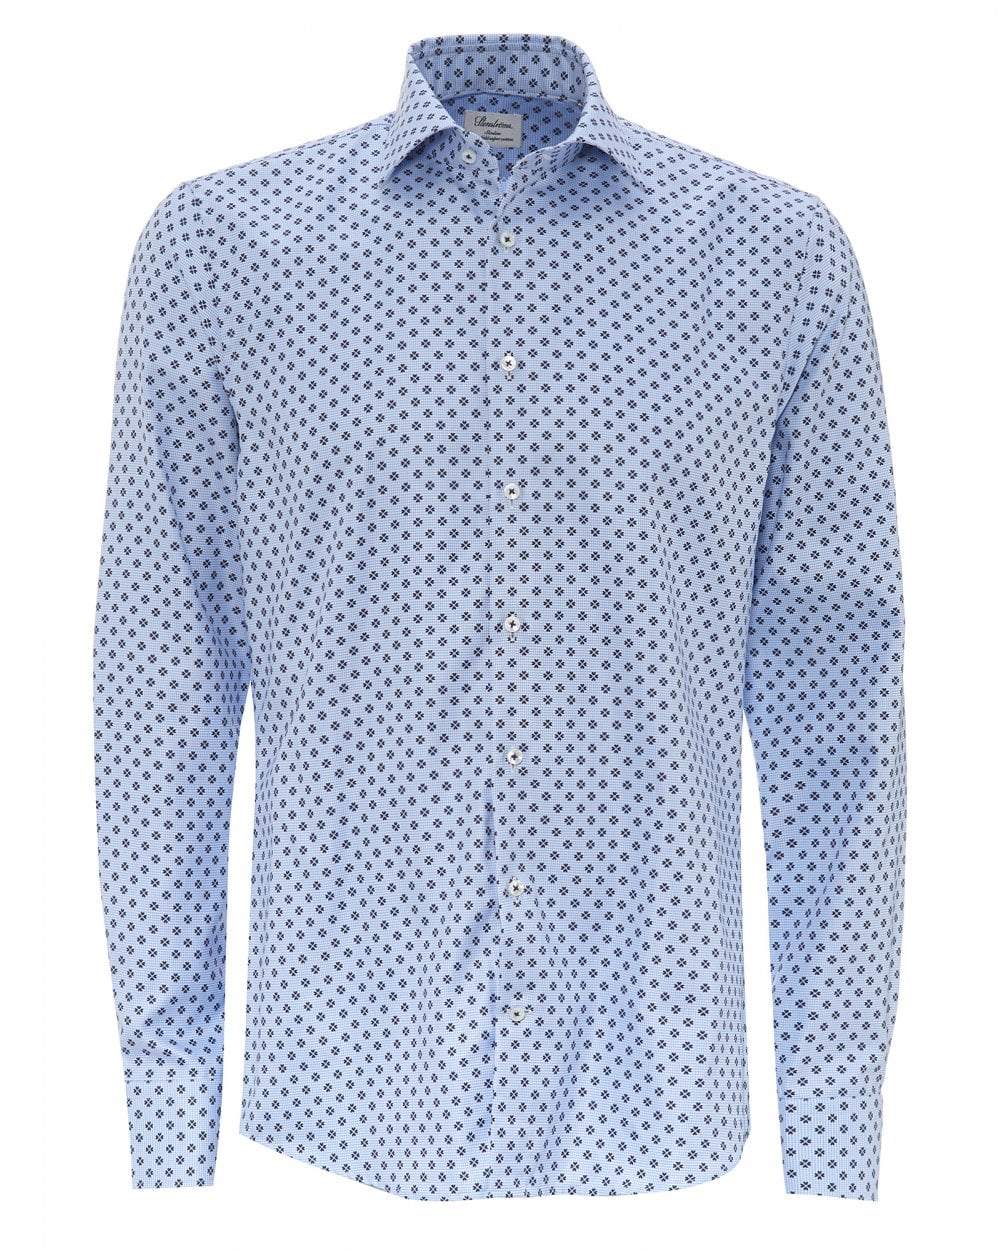 3f62064ad40 Stenströms Mens Fitted All-Over Floral Print Blue Shirt